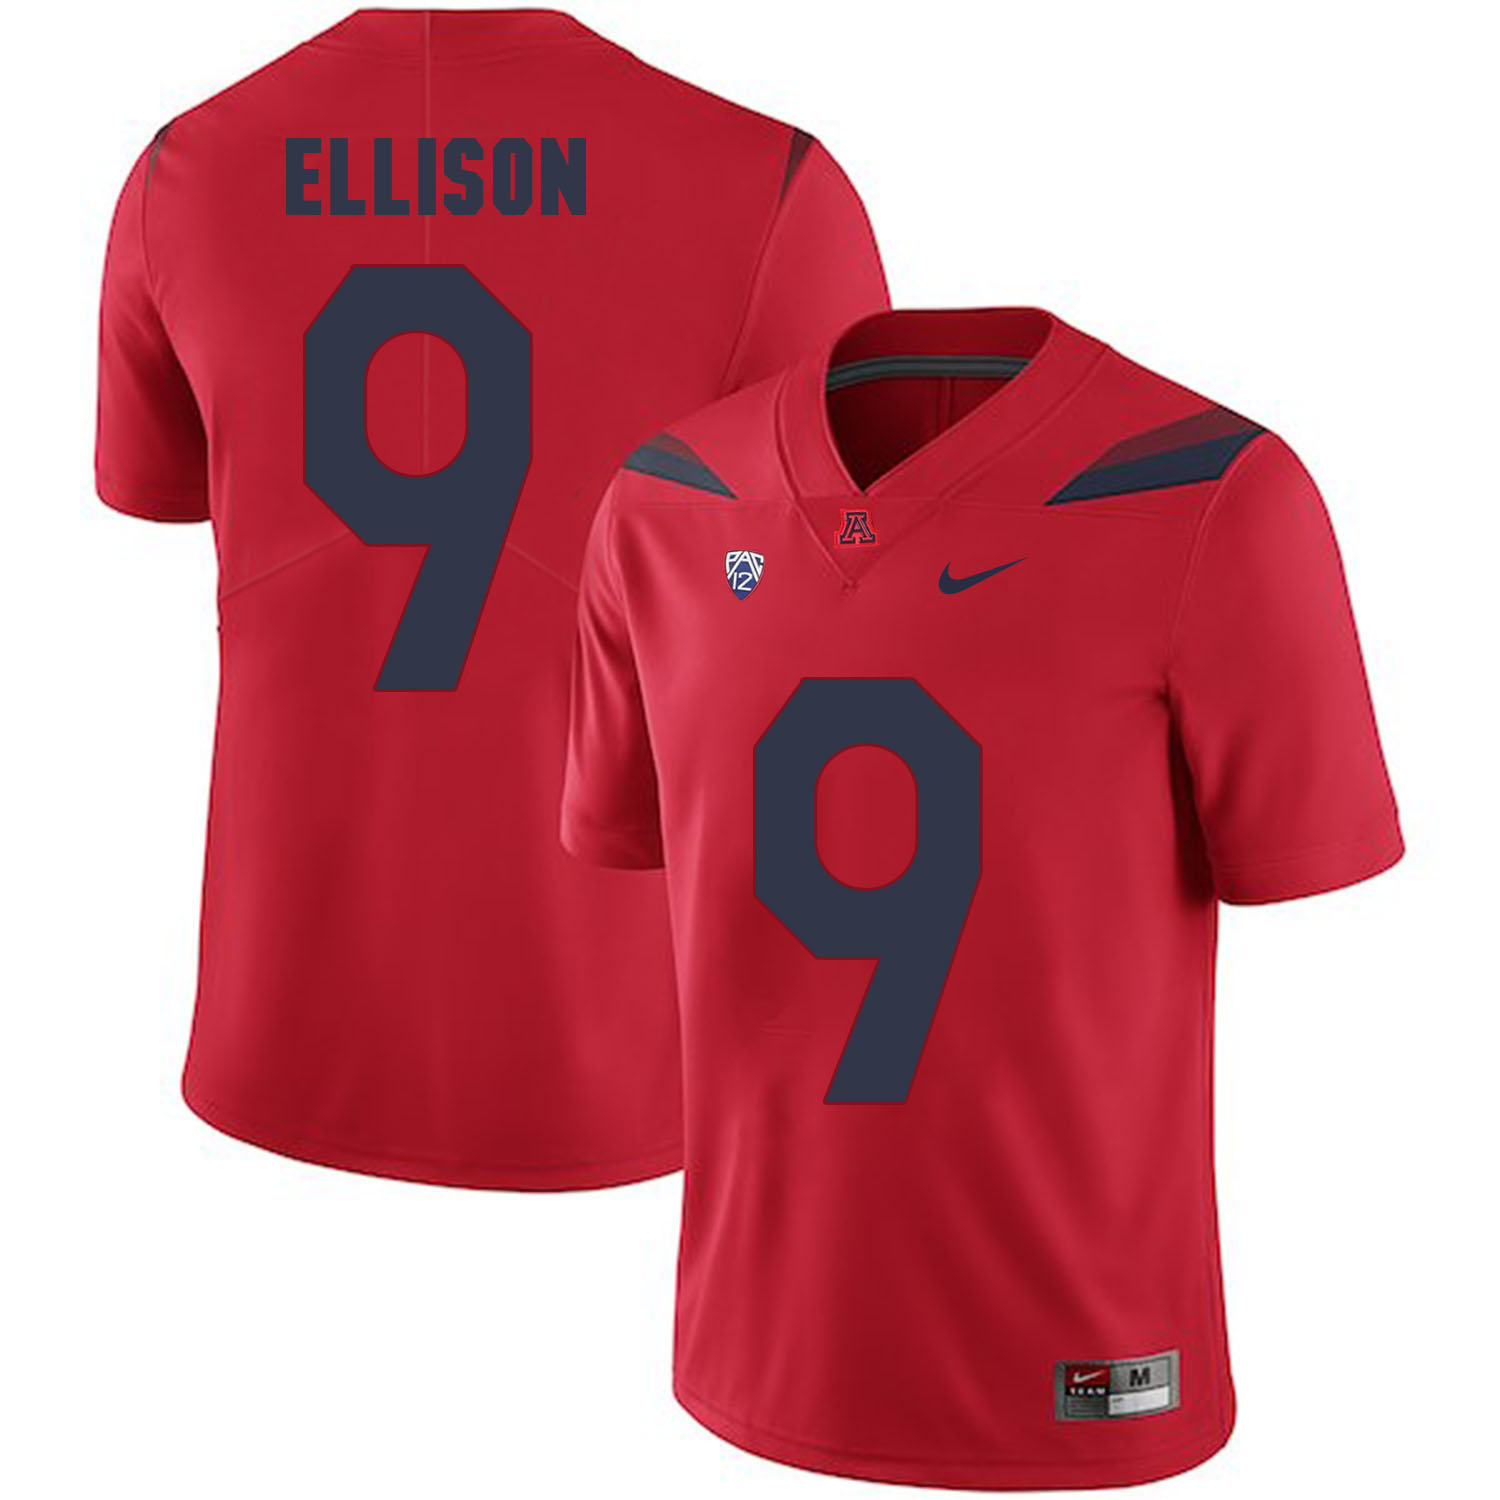 Arizona Wildcats 9 Tony Ellison Red College Football Jersey